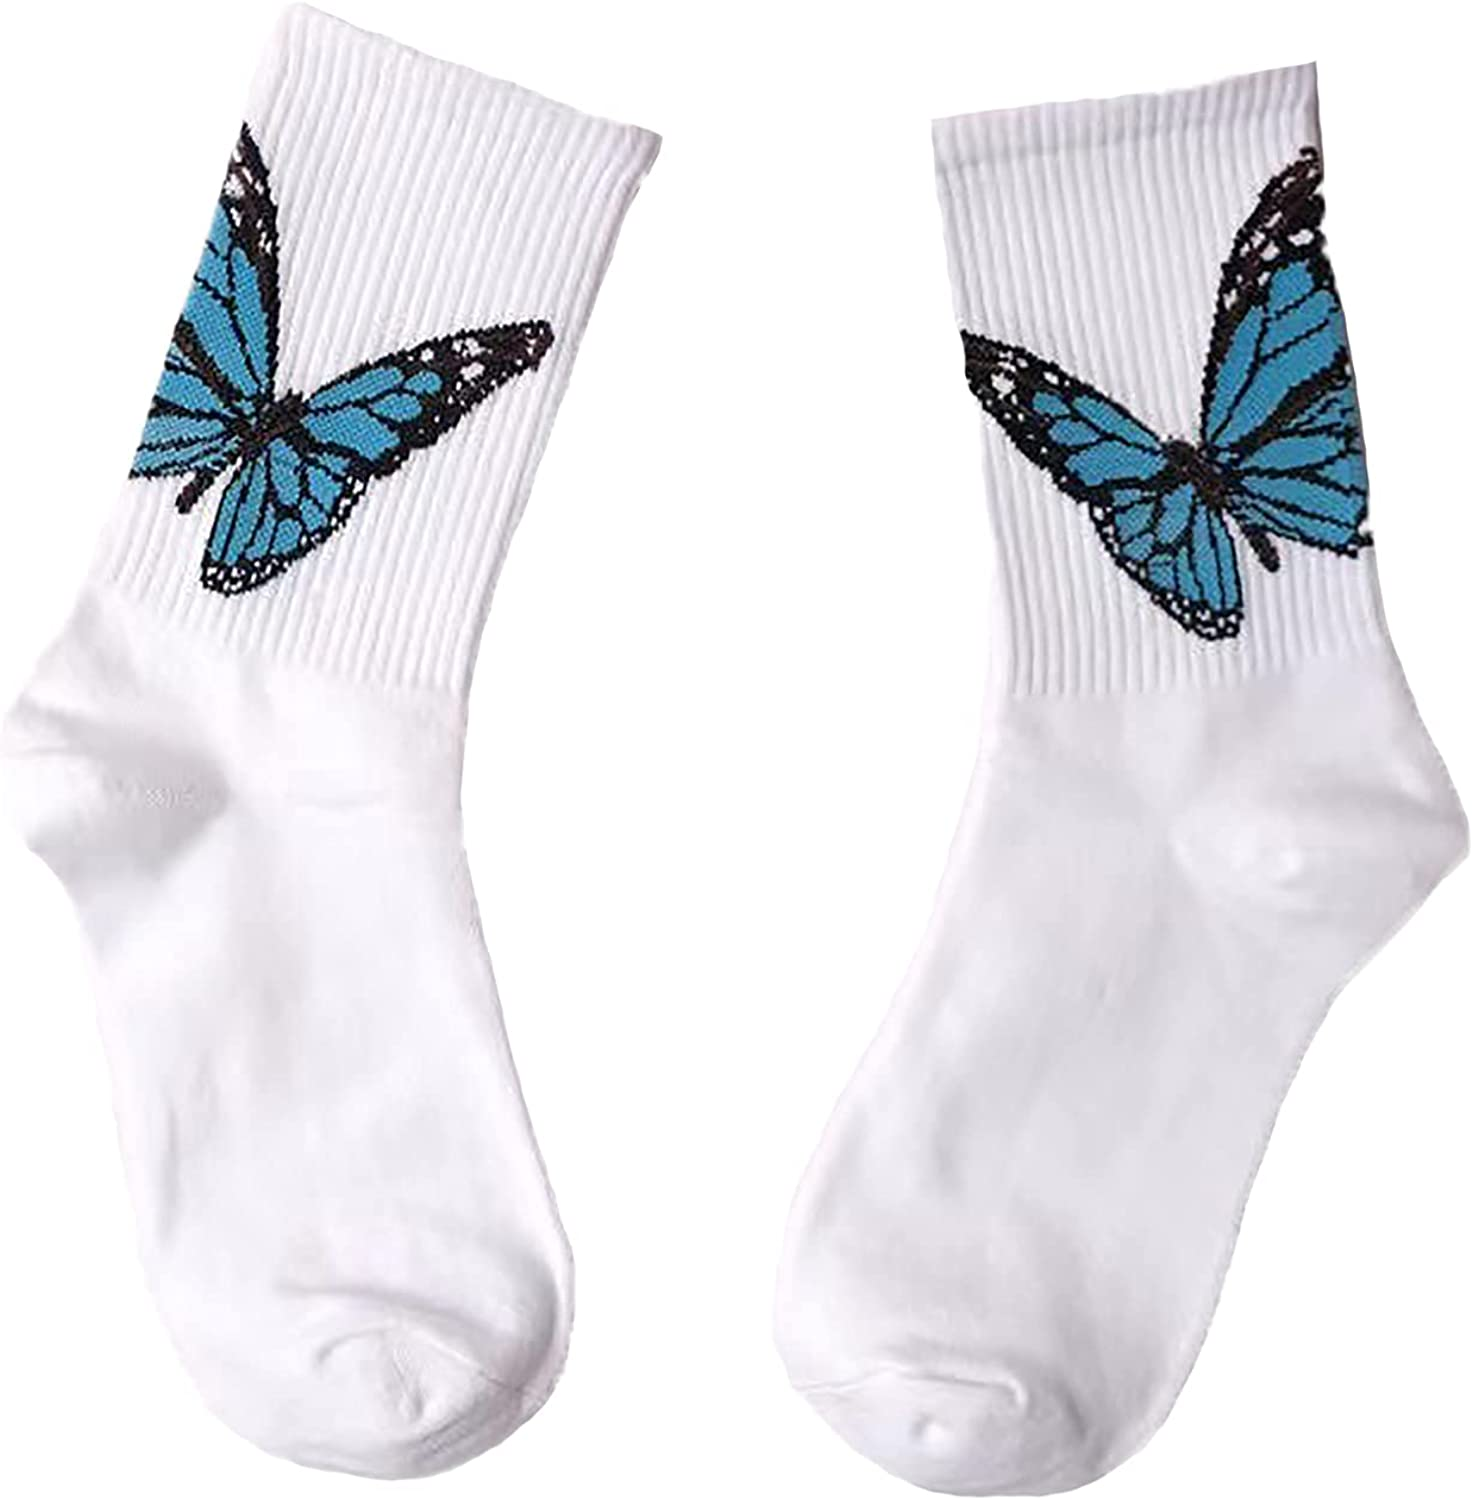 Aluo Palm Angels Compression Socks Women Cute Butterfly Printed Cotton Tube Socks Girls Casual Street Fashion Crew Sock